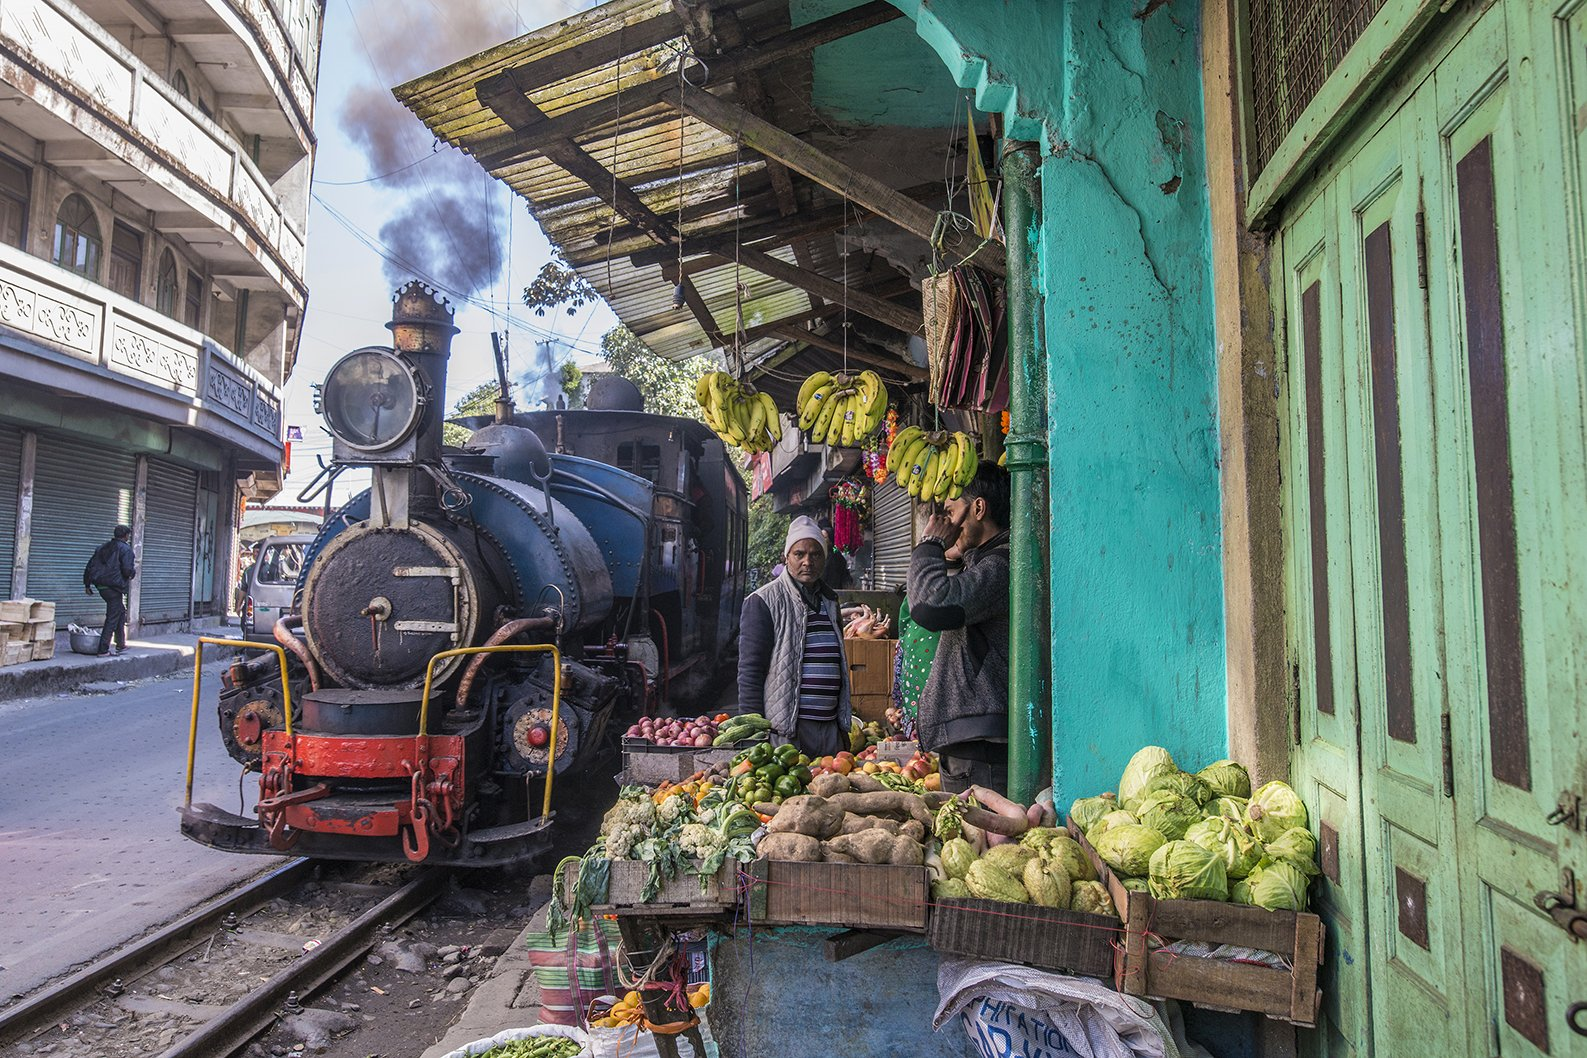 Toy train passing through a market in Darjeeling in India